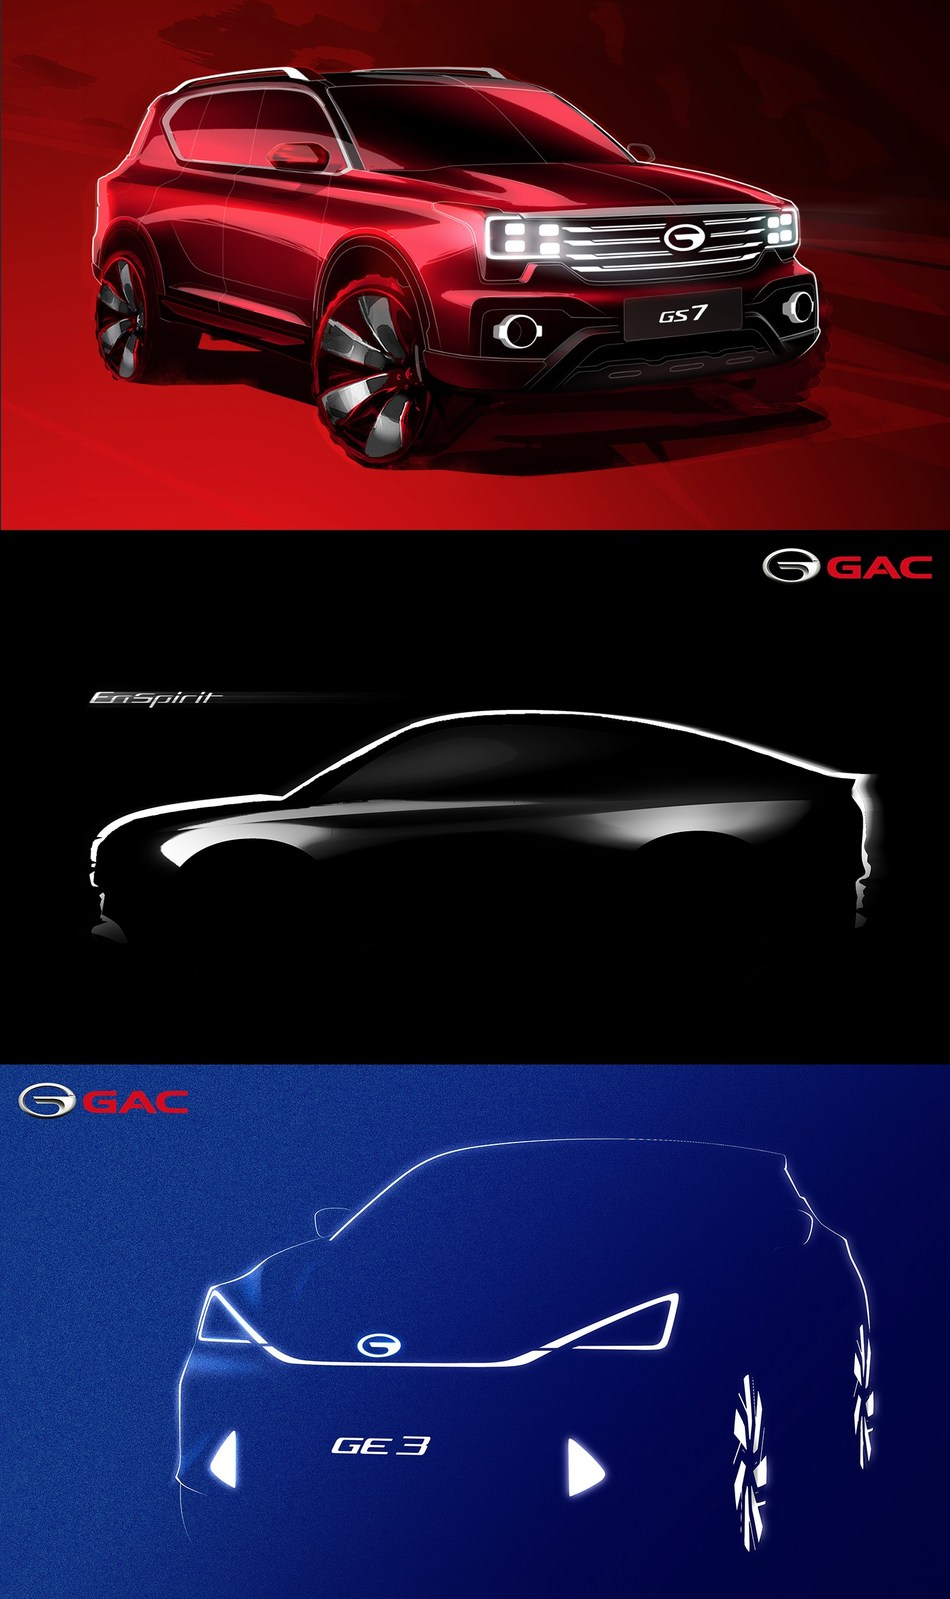 GAC Motor's three most anticipated vehicles will be released at 2017 NAIAS